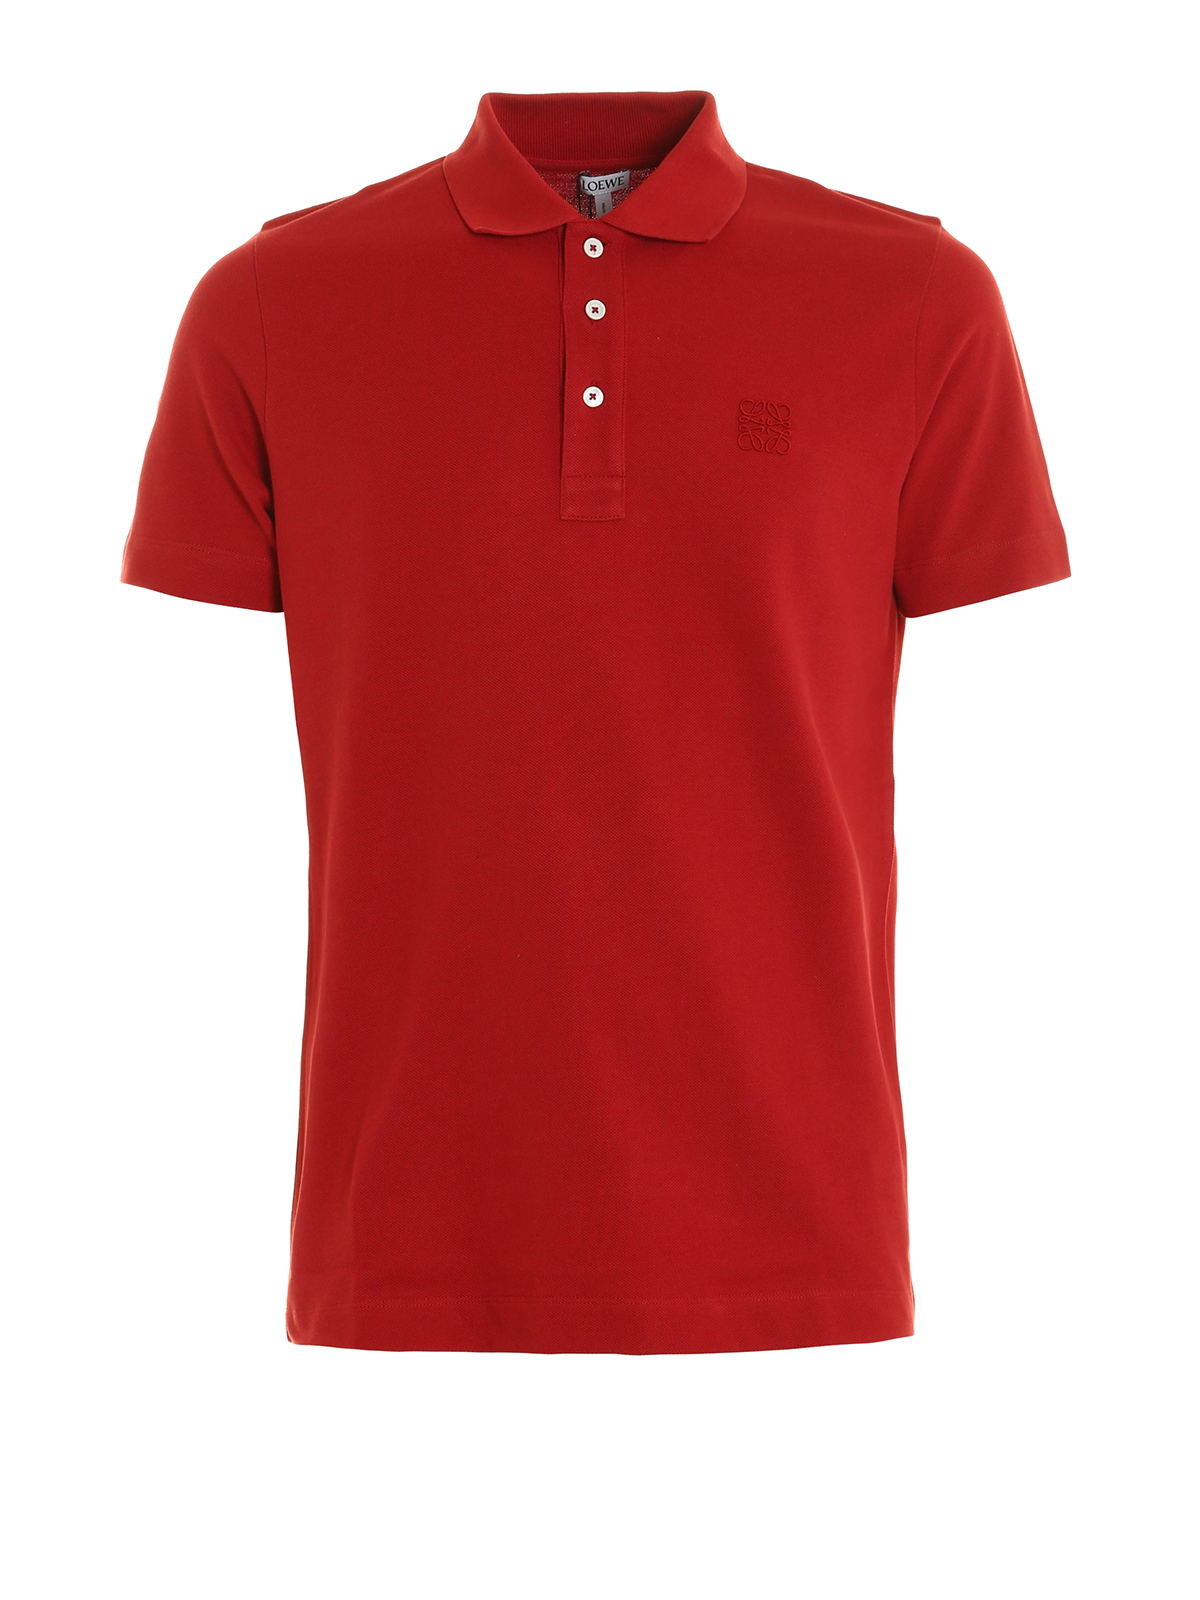 Embroidered logo polo shirt by loewe polo shirts ikrix for Polo shirts with logos